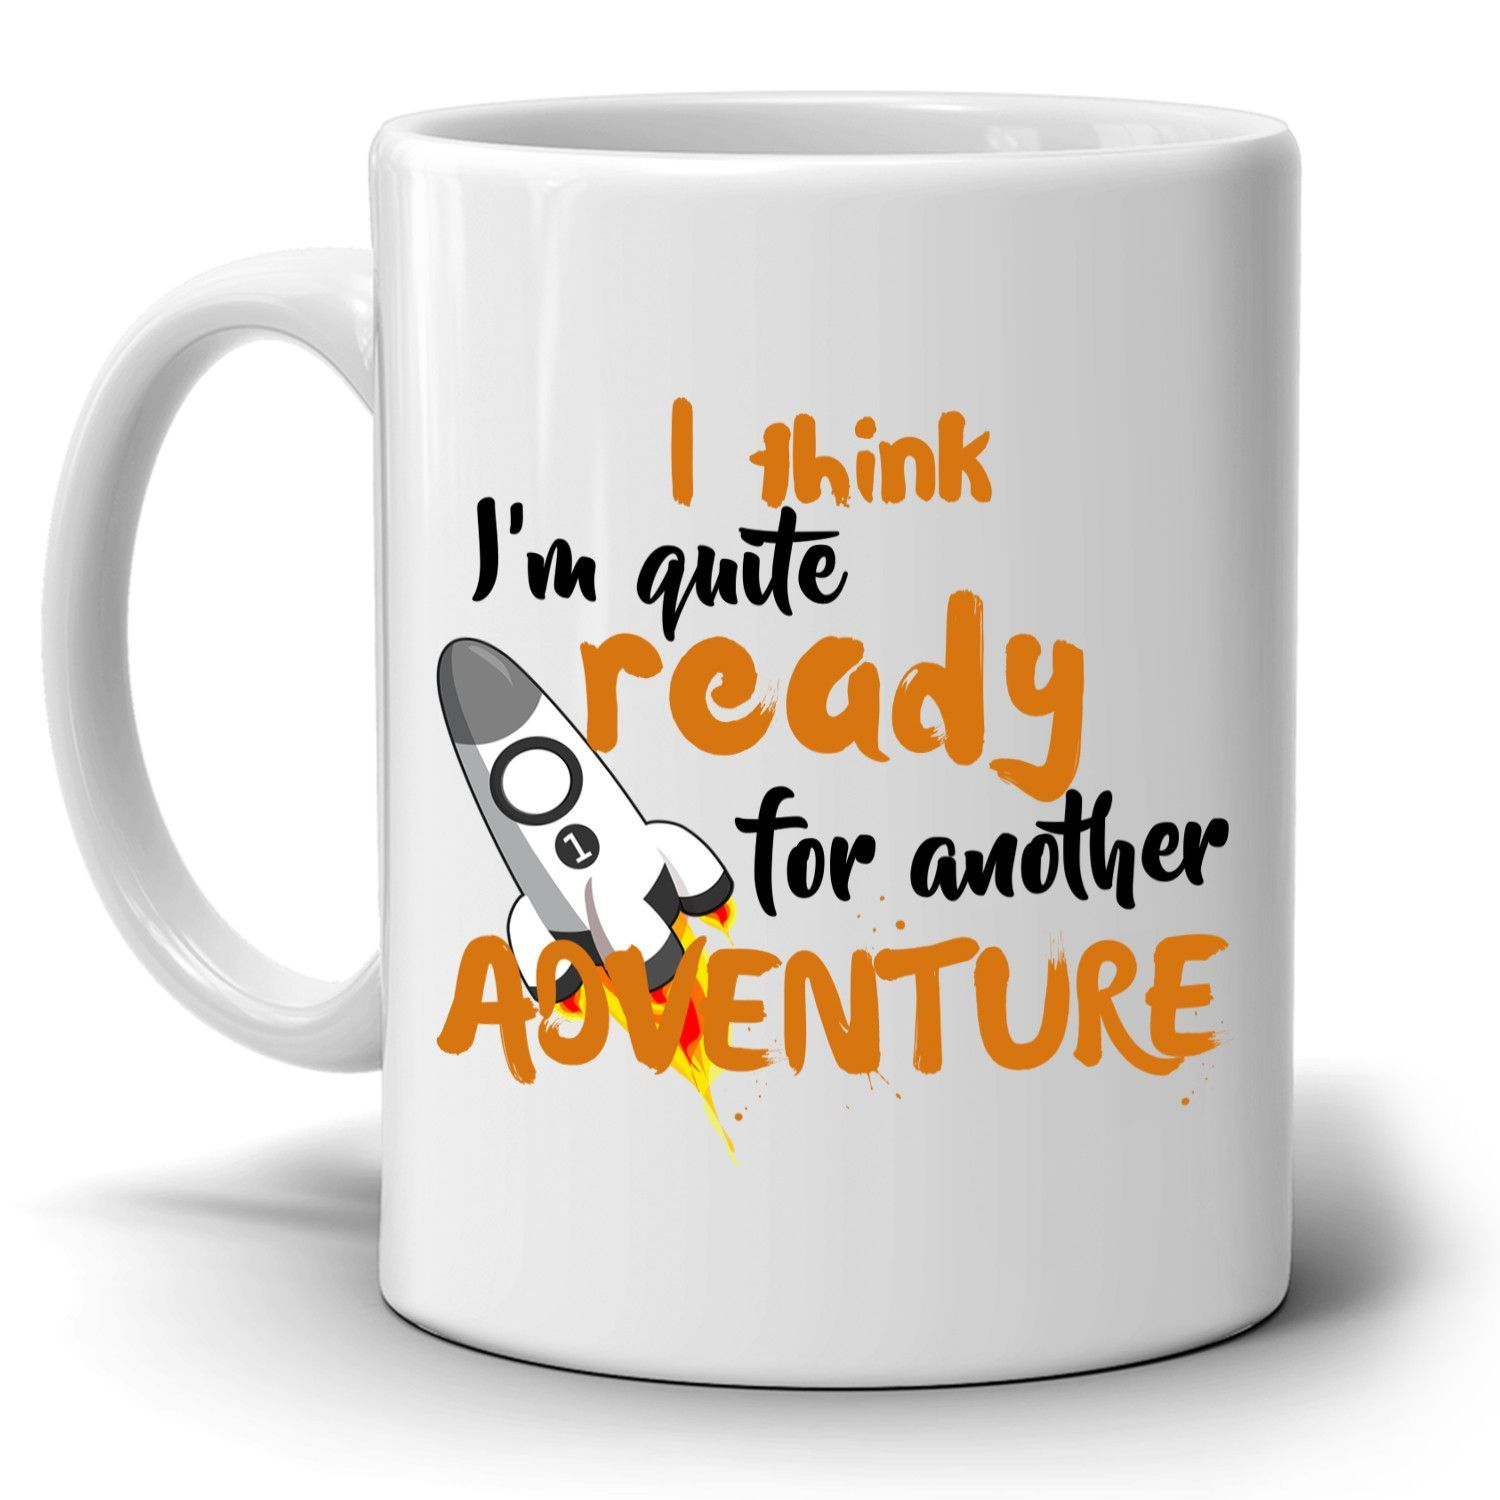 Funny Adventure Graduation Gifts Coffee Mug for Men and